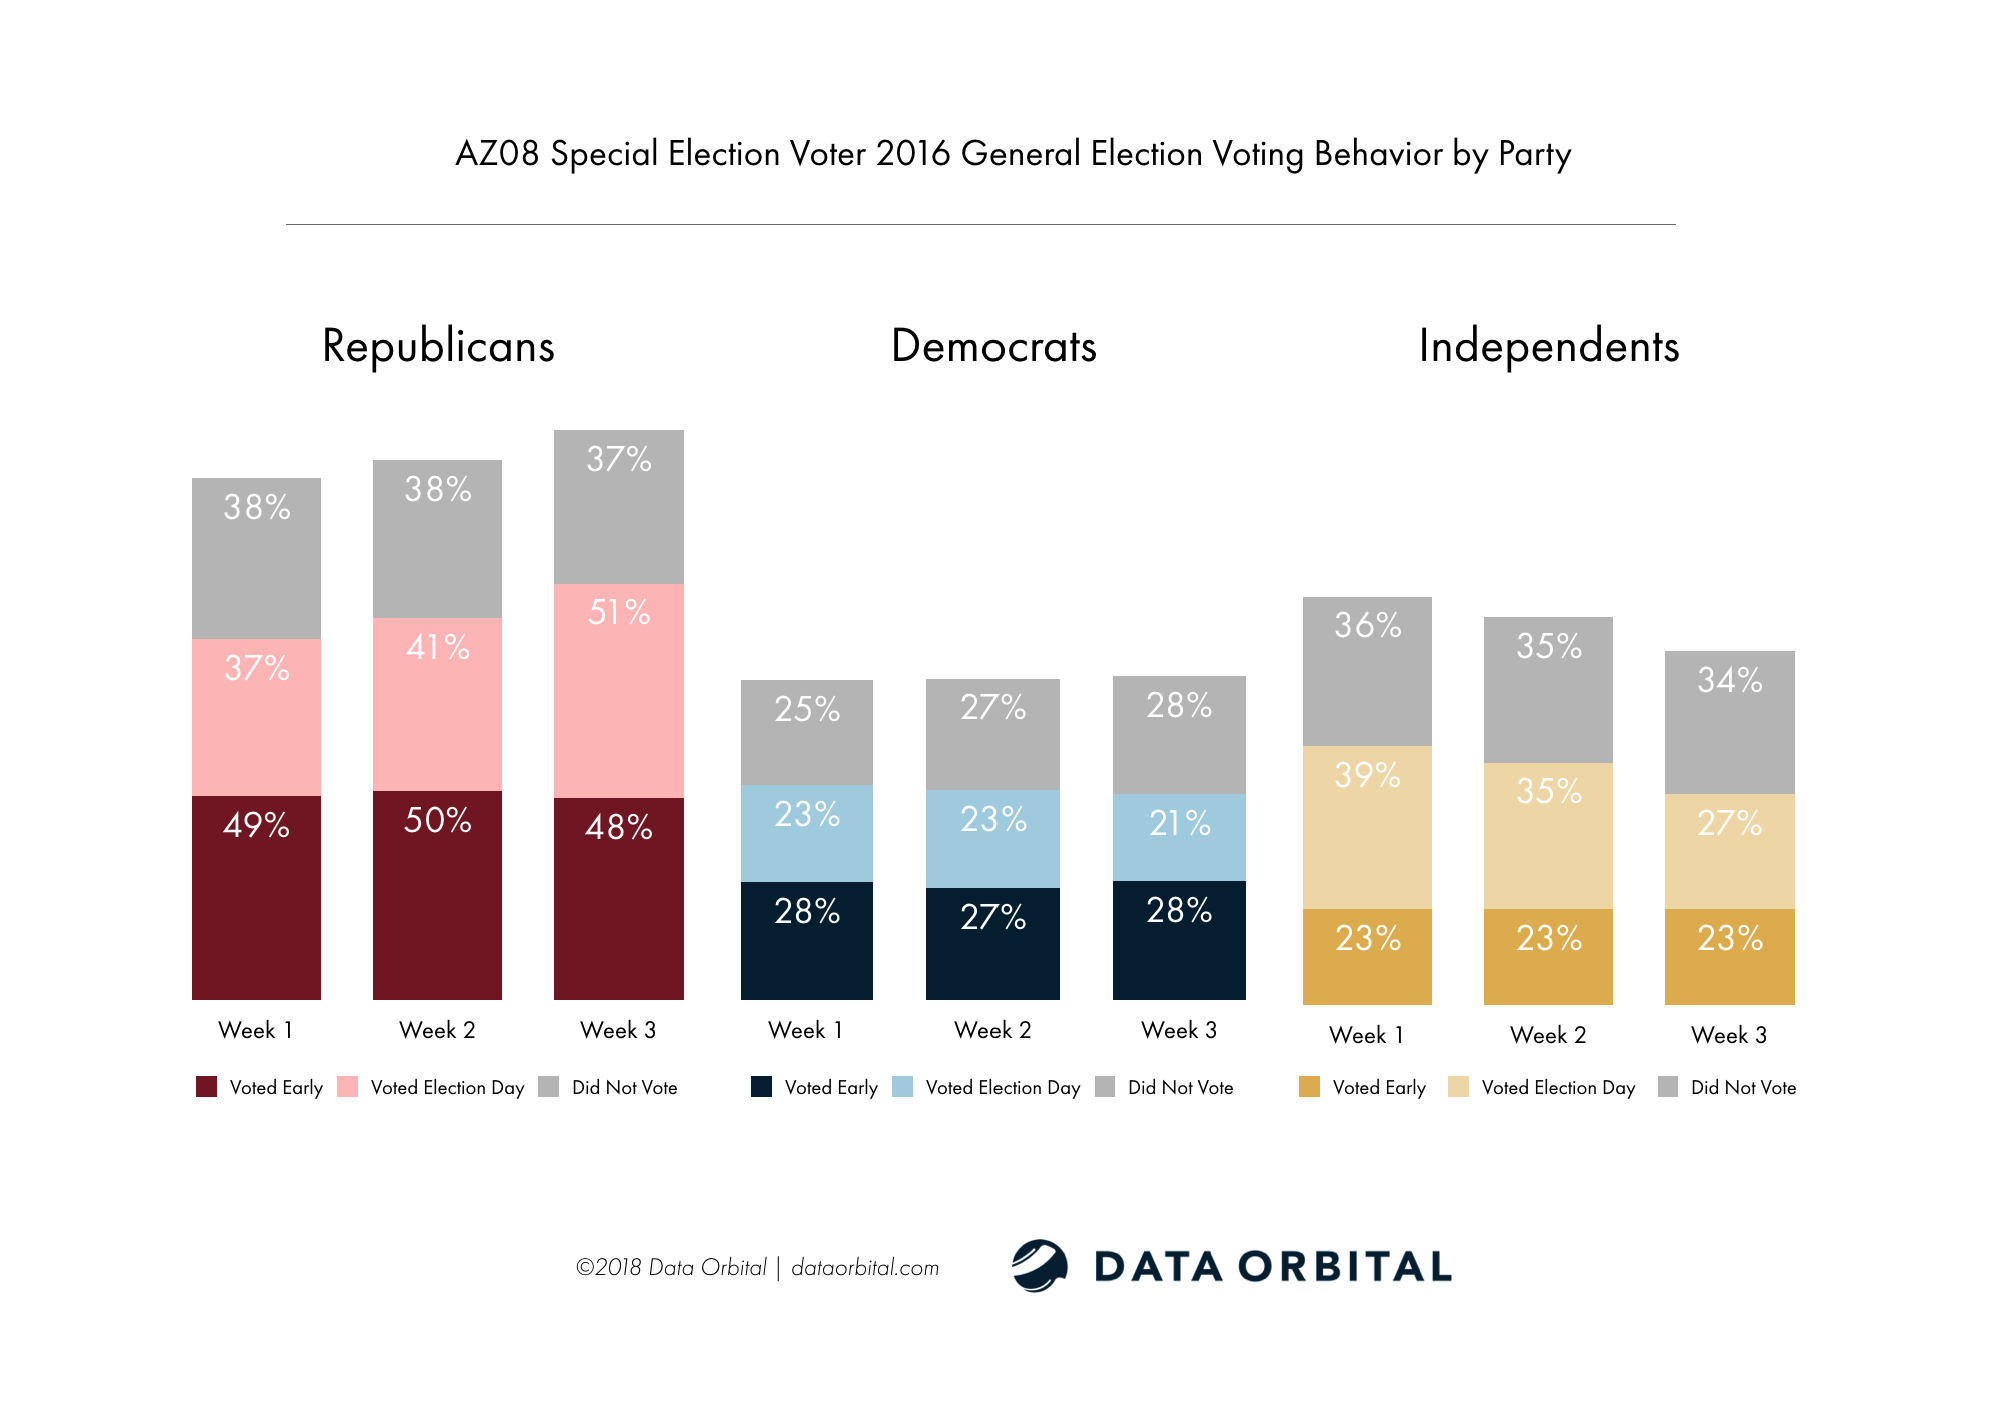 AZ08 Special Election Week 3 Wrap Up Analysis 2016 General Election Voting Behavior by Party